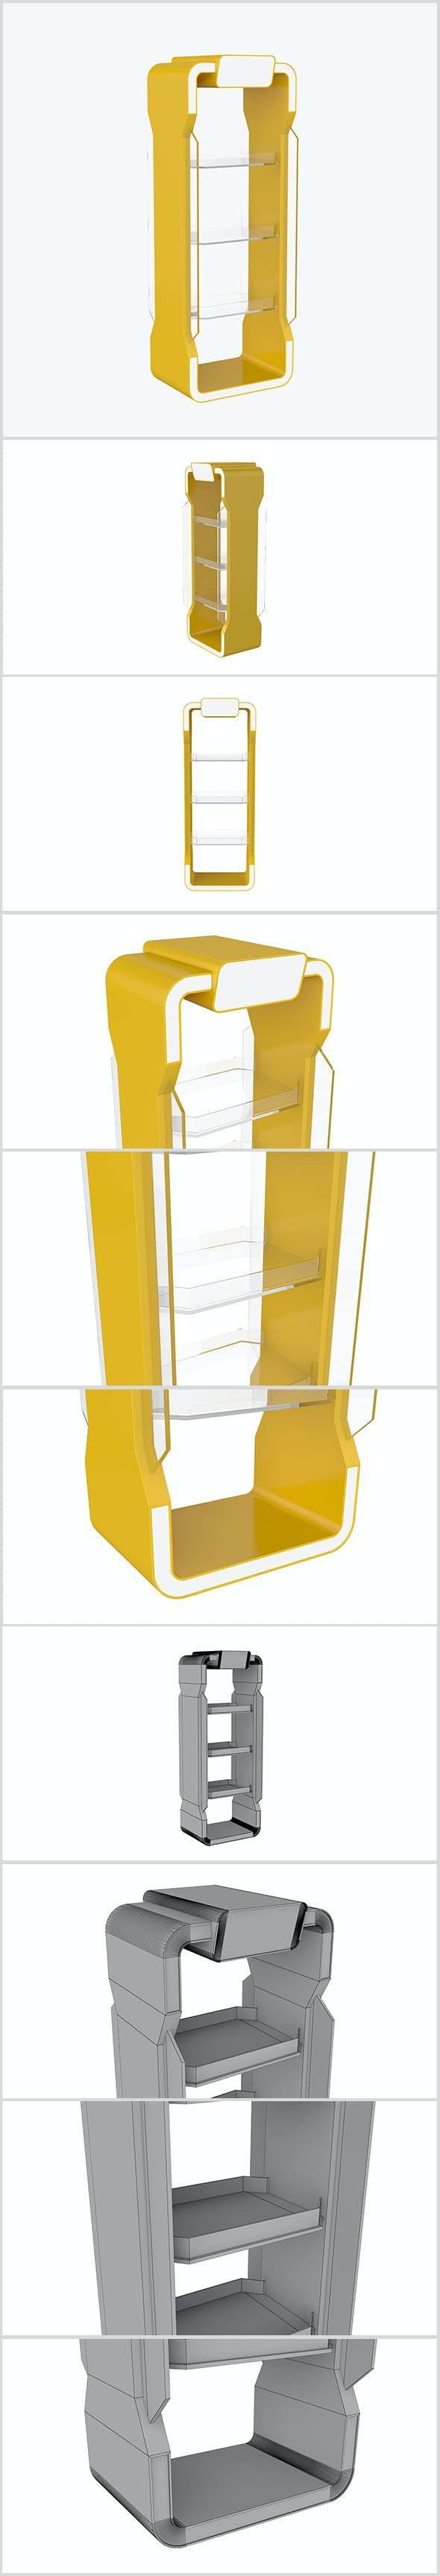 Stand Plastic Glass 3D - 3DOcean Item for Sale